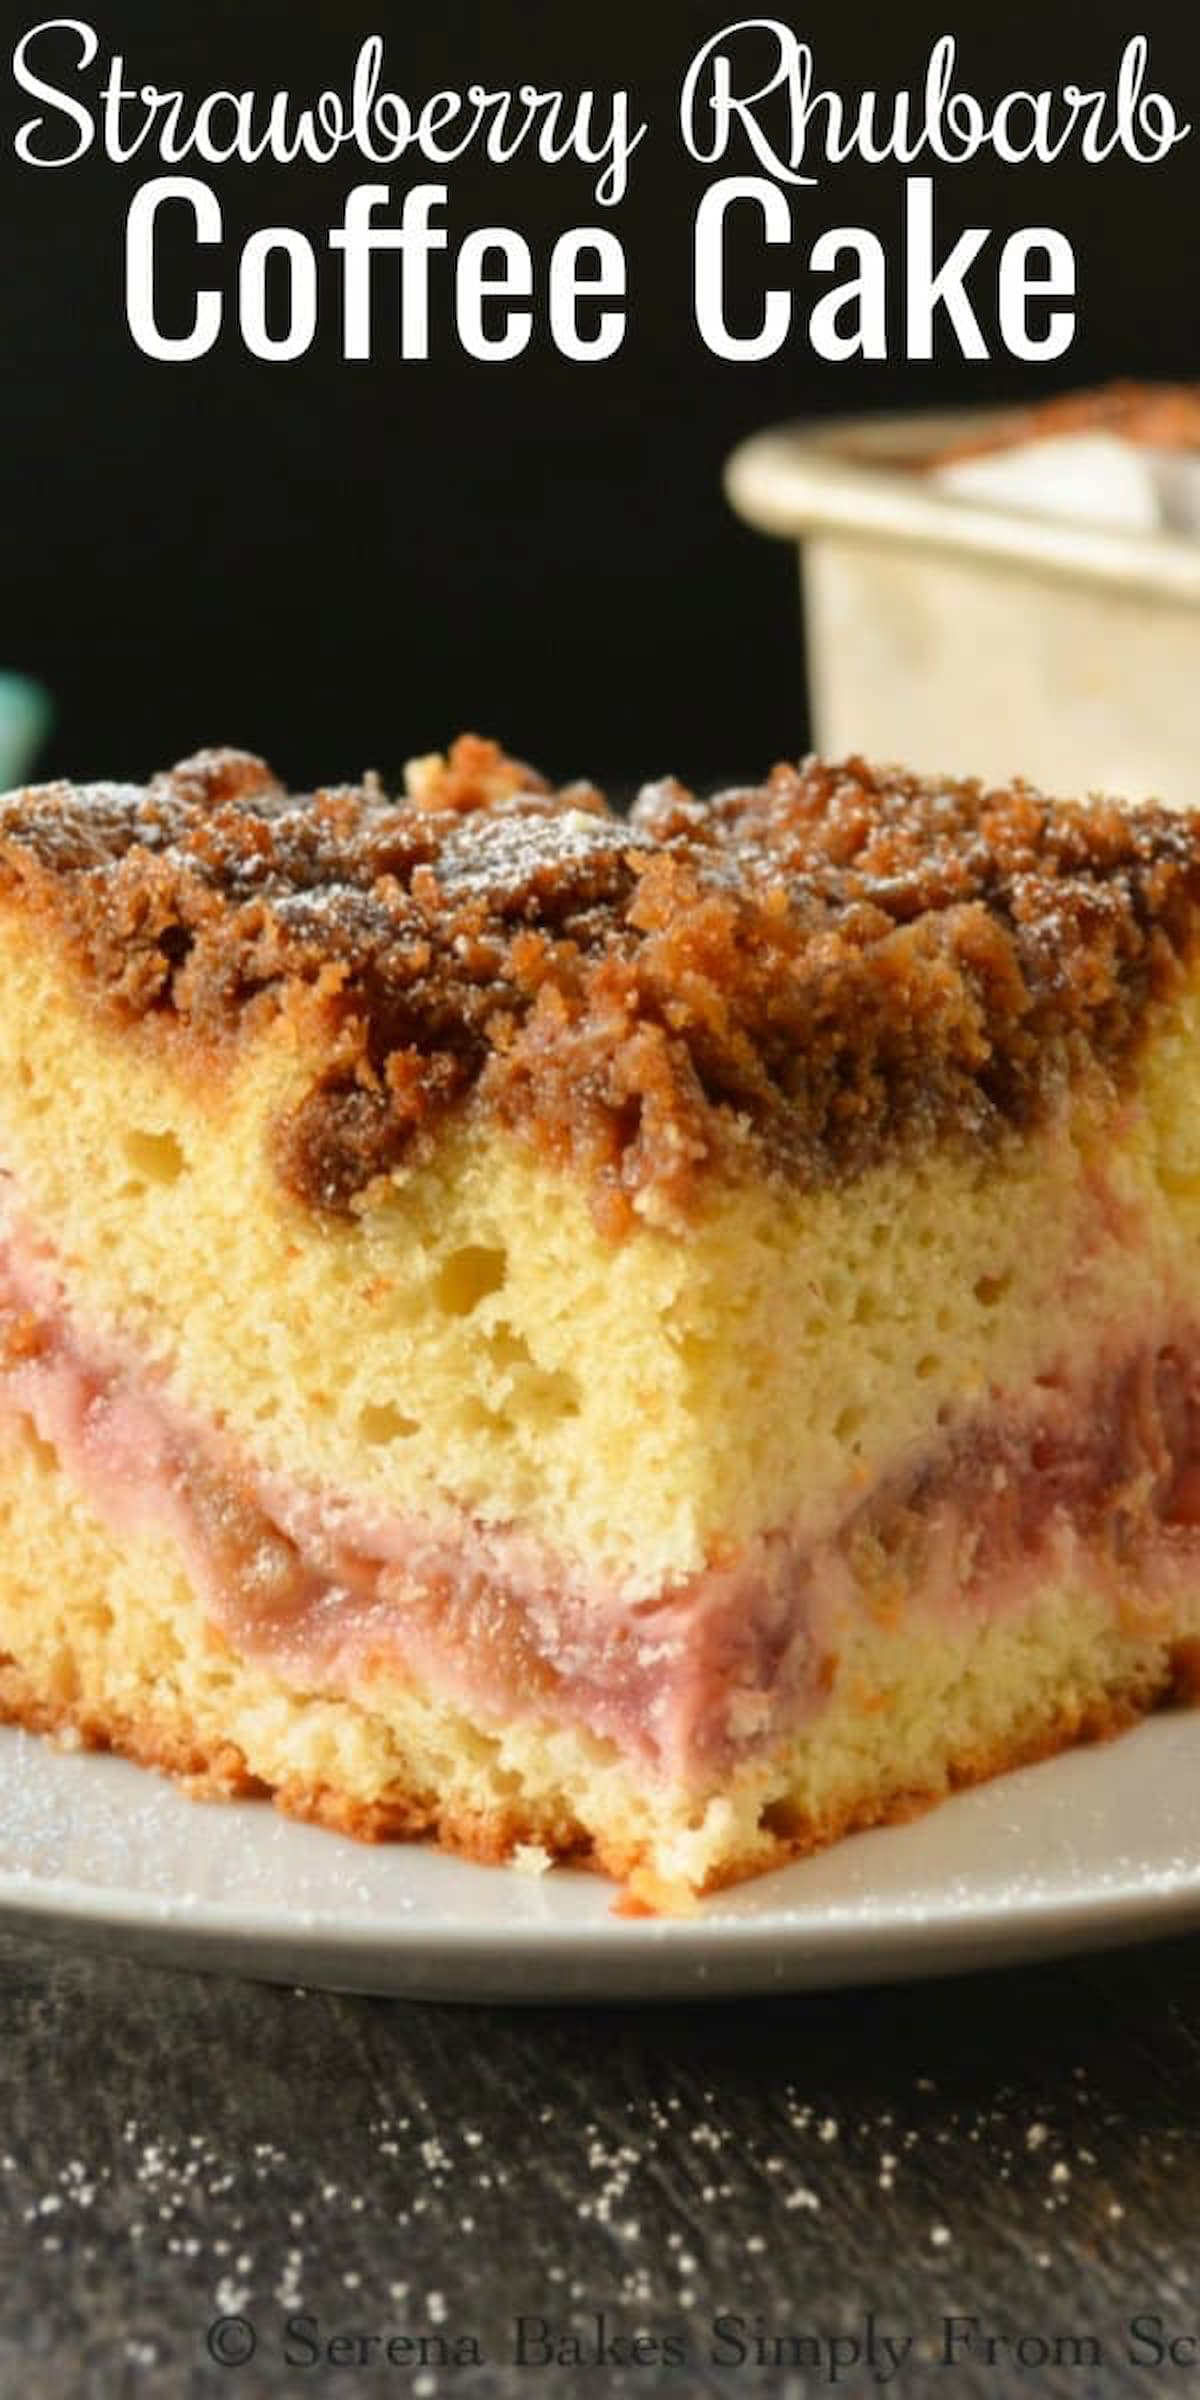 Strawberry Rhubarb Coffee Cake made with extraordinary with a layer of strawberry rhubarb filling covered with a brown sugar cinnamon crumb! Great for breakfast, Brunch or dessert from Serena Bakes Simply From Scratch.